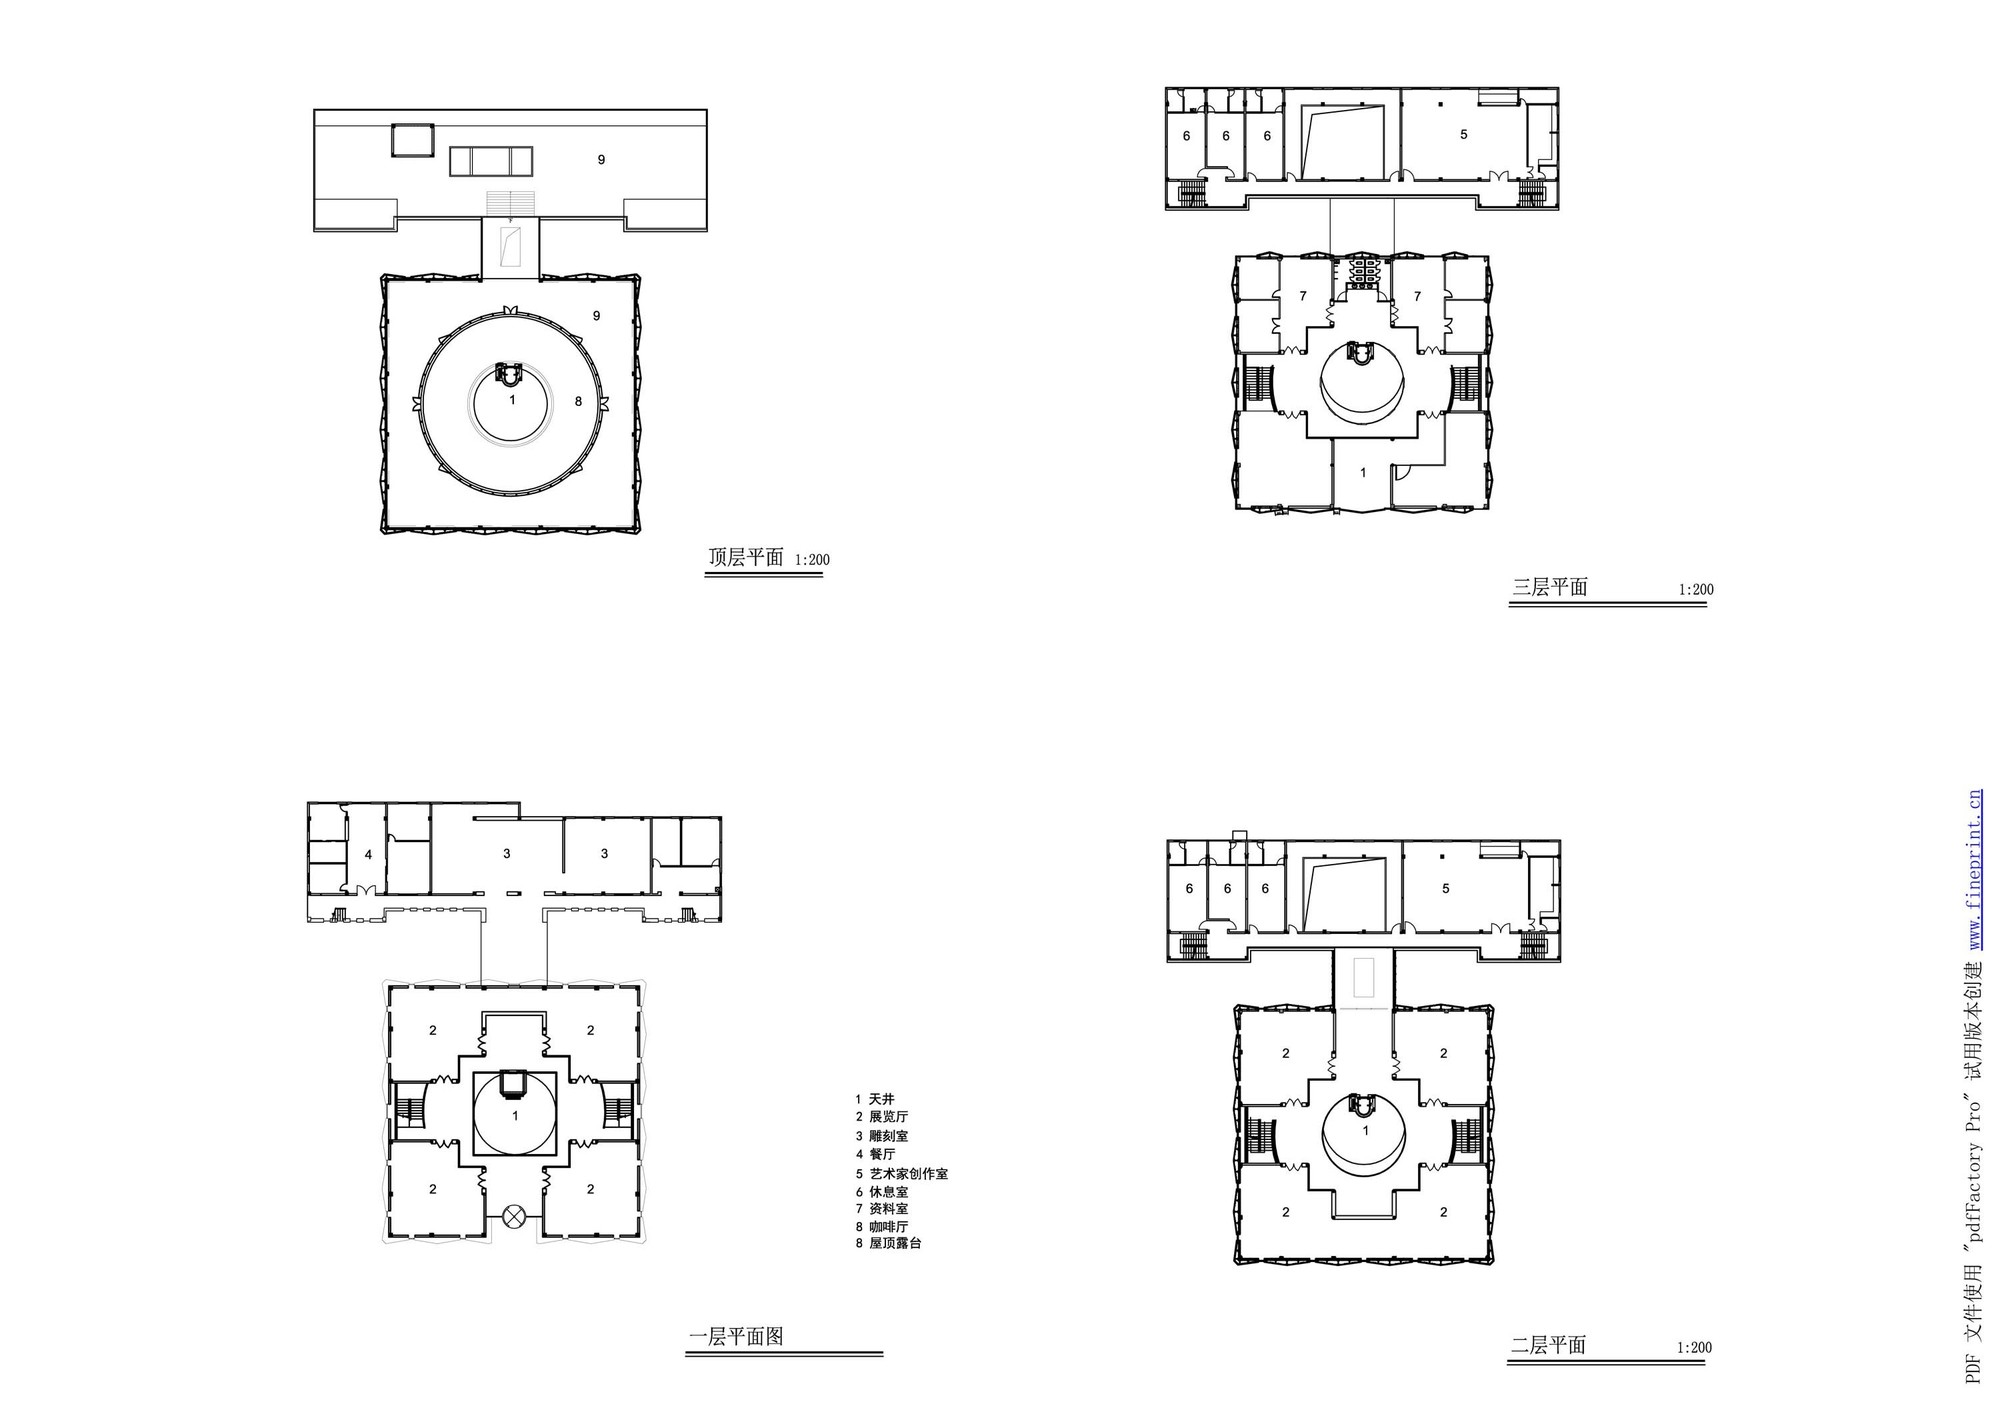 How to Create Library or any other Floor Plans  OEDBorg